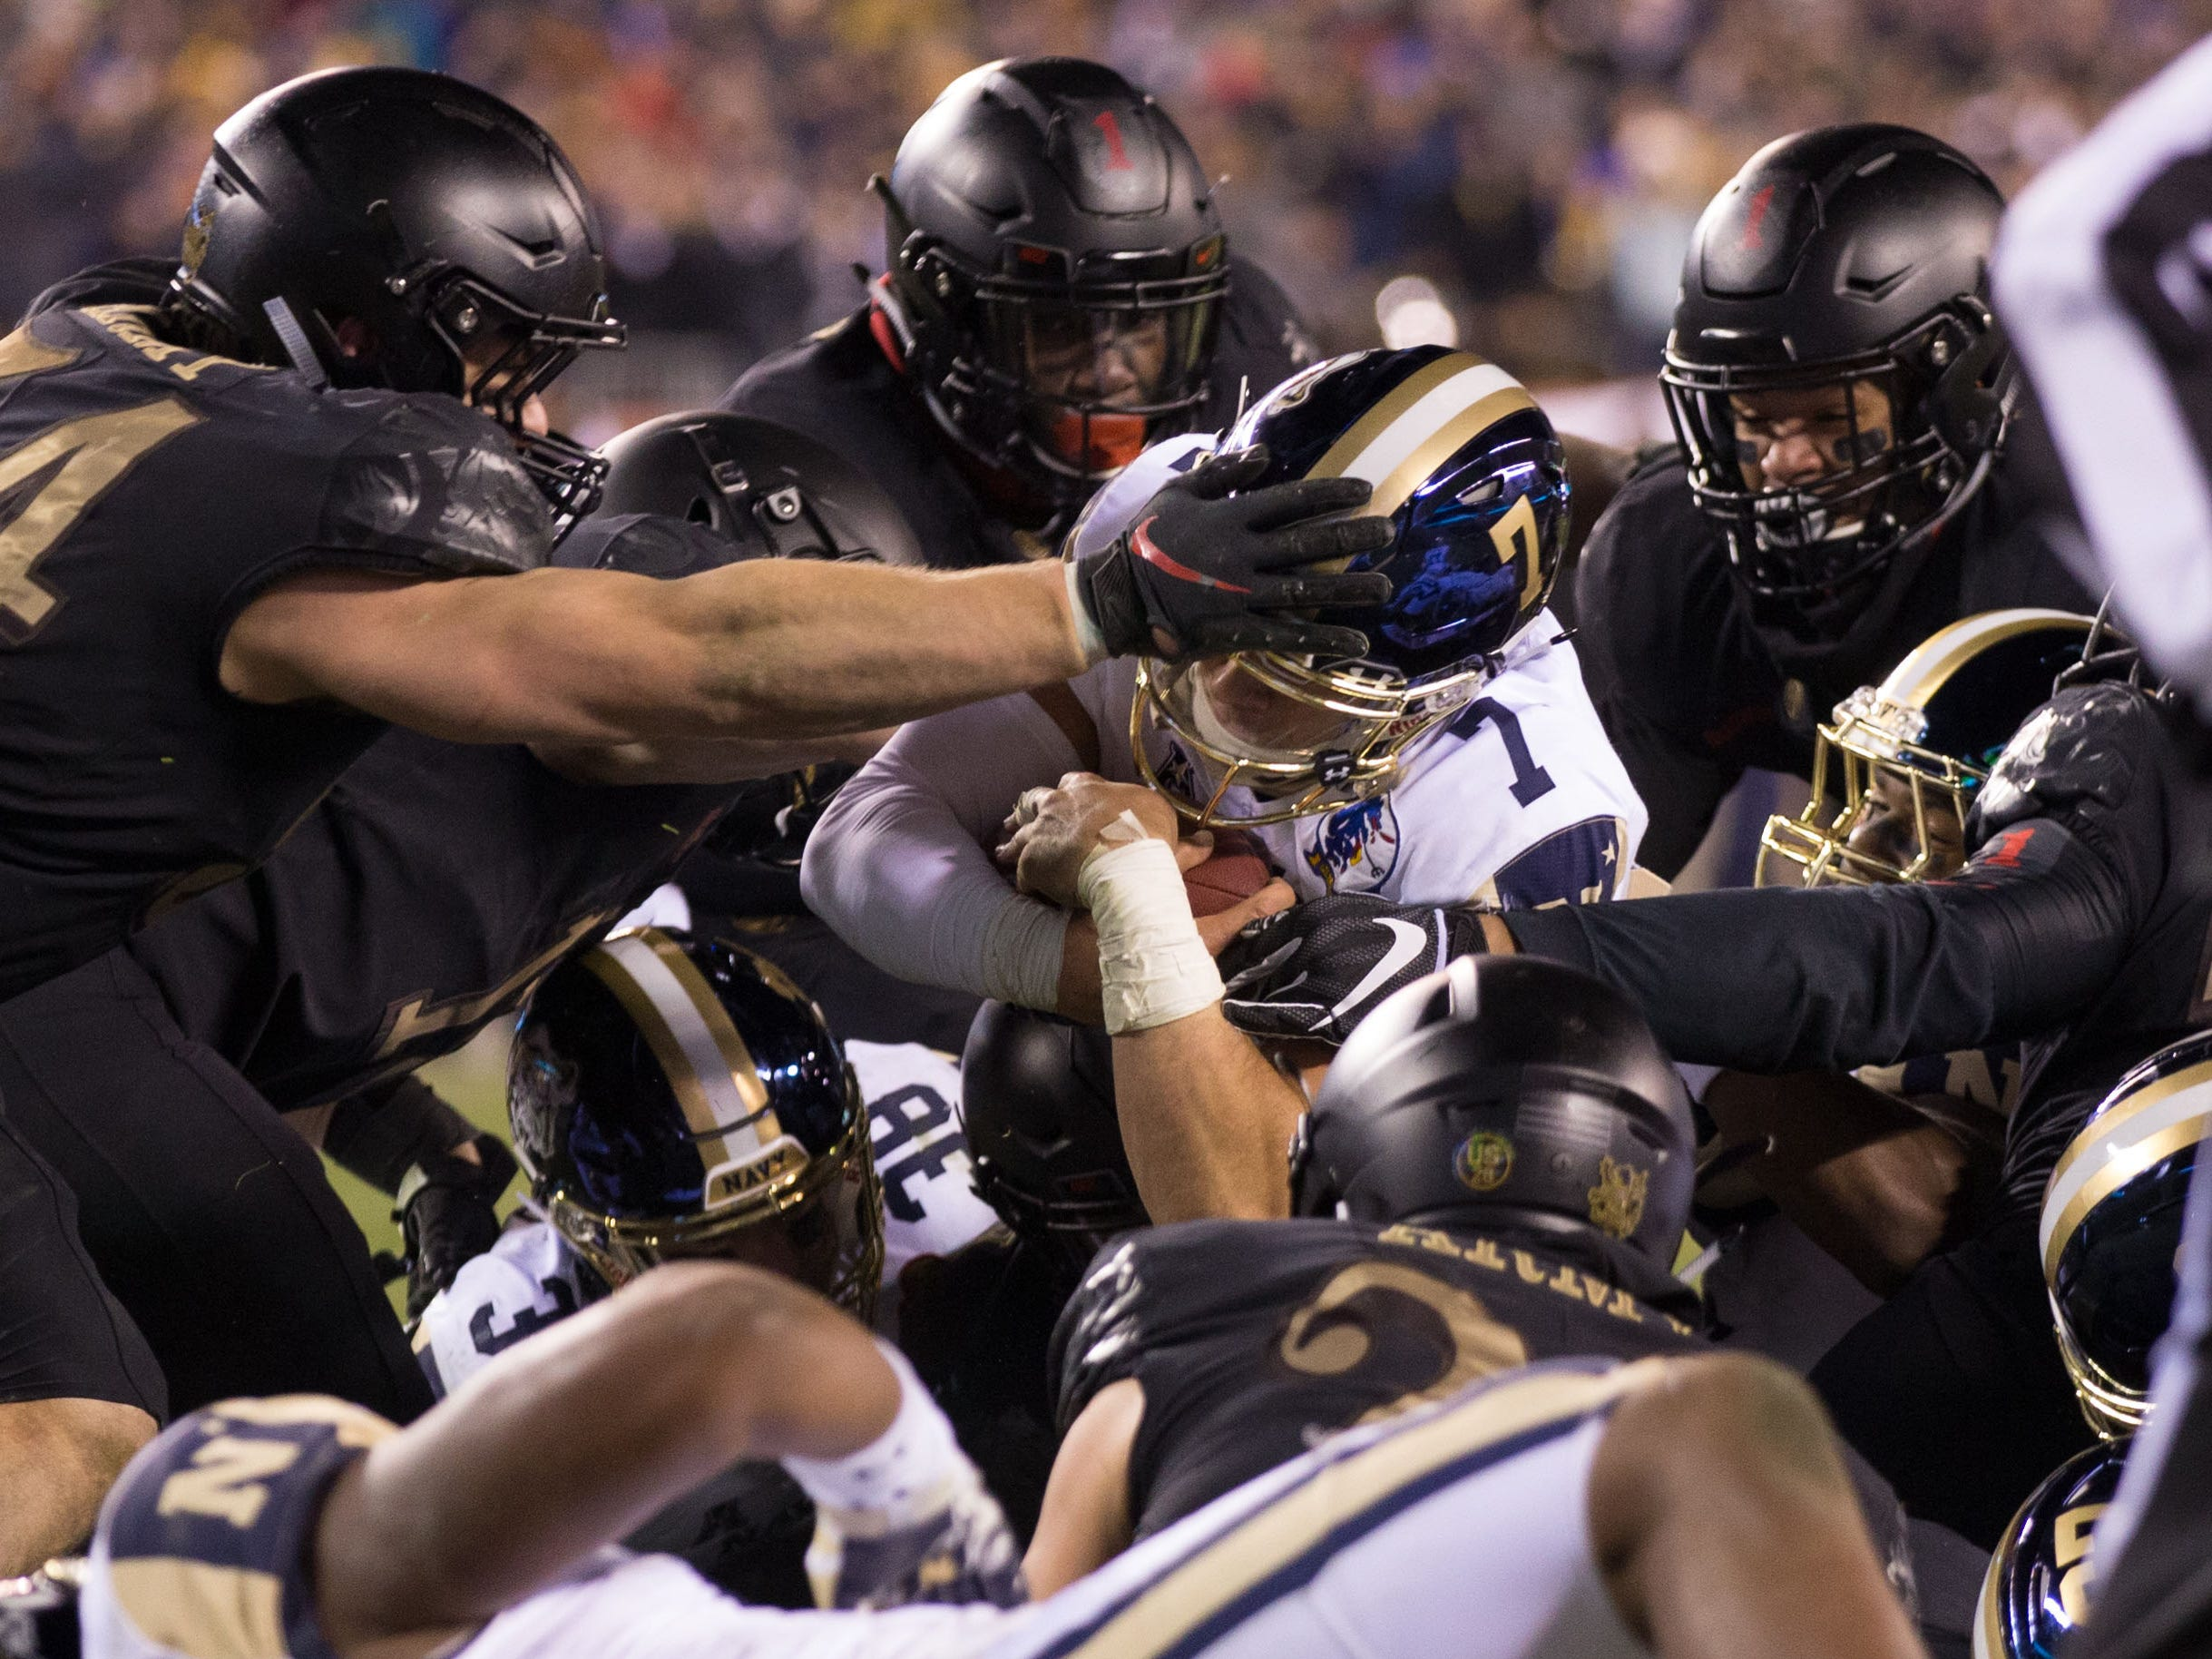 Navy Midshipmen quarterback Garret Lewis (7) scores a touchdown against the Army Black Knights during the fourth quarter at Lincoln Financial Field.